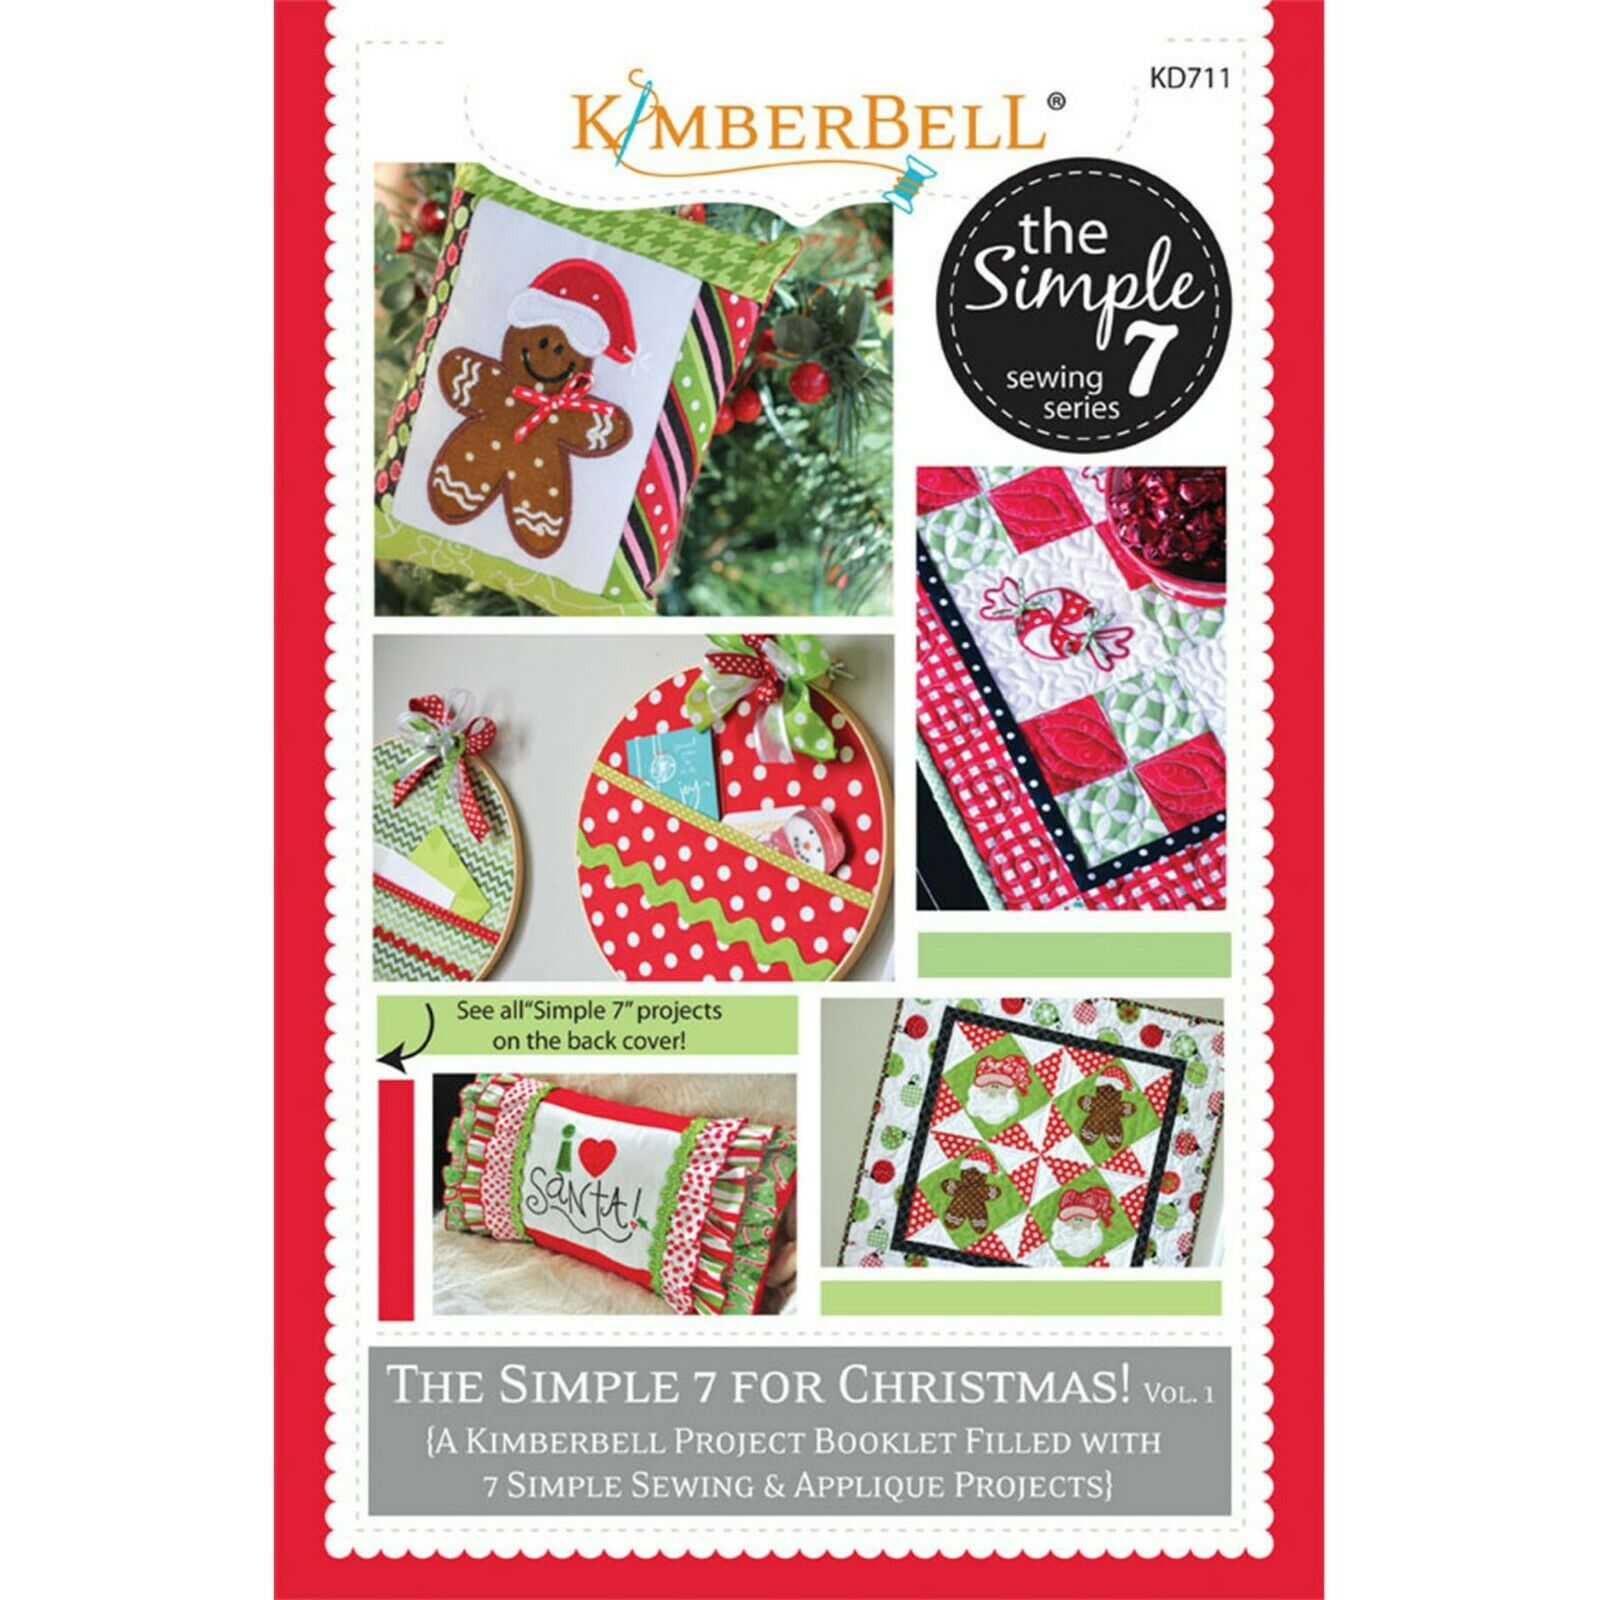 KIMBERBELL THE SIMPLE 7 FOR CHRISTMAS! Vol 1  Project Booklet